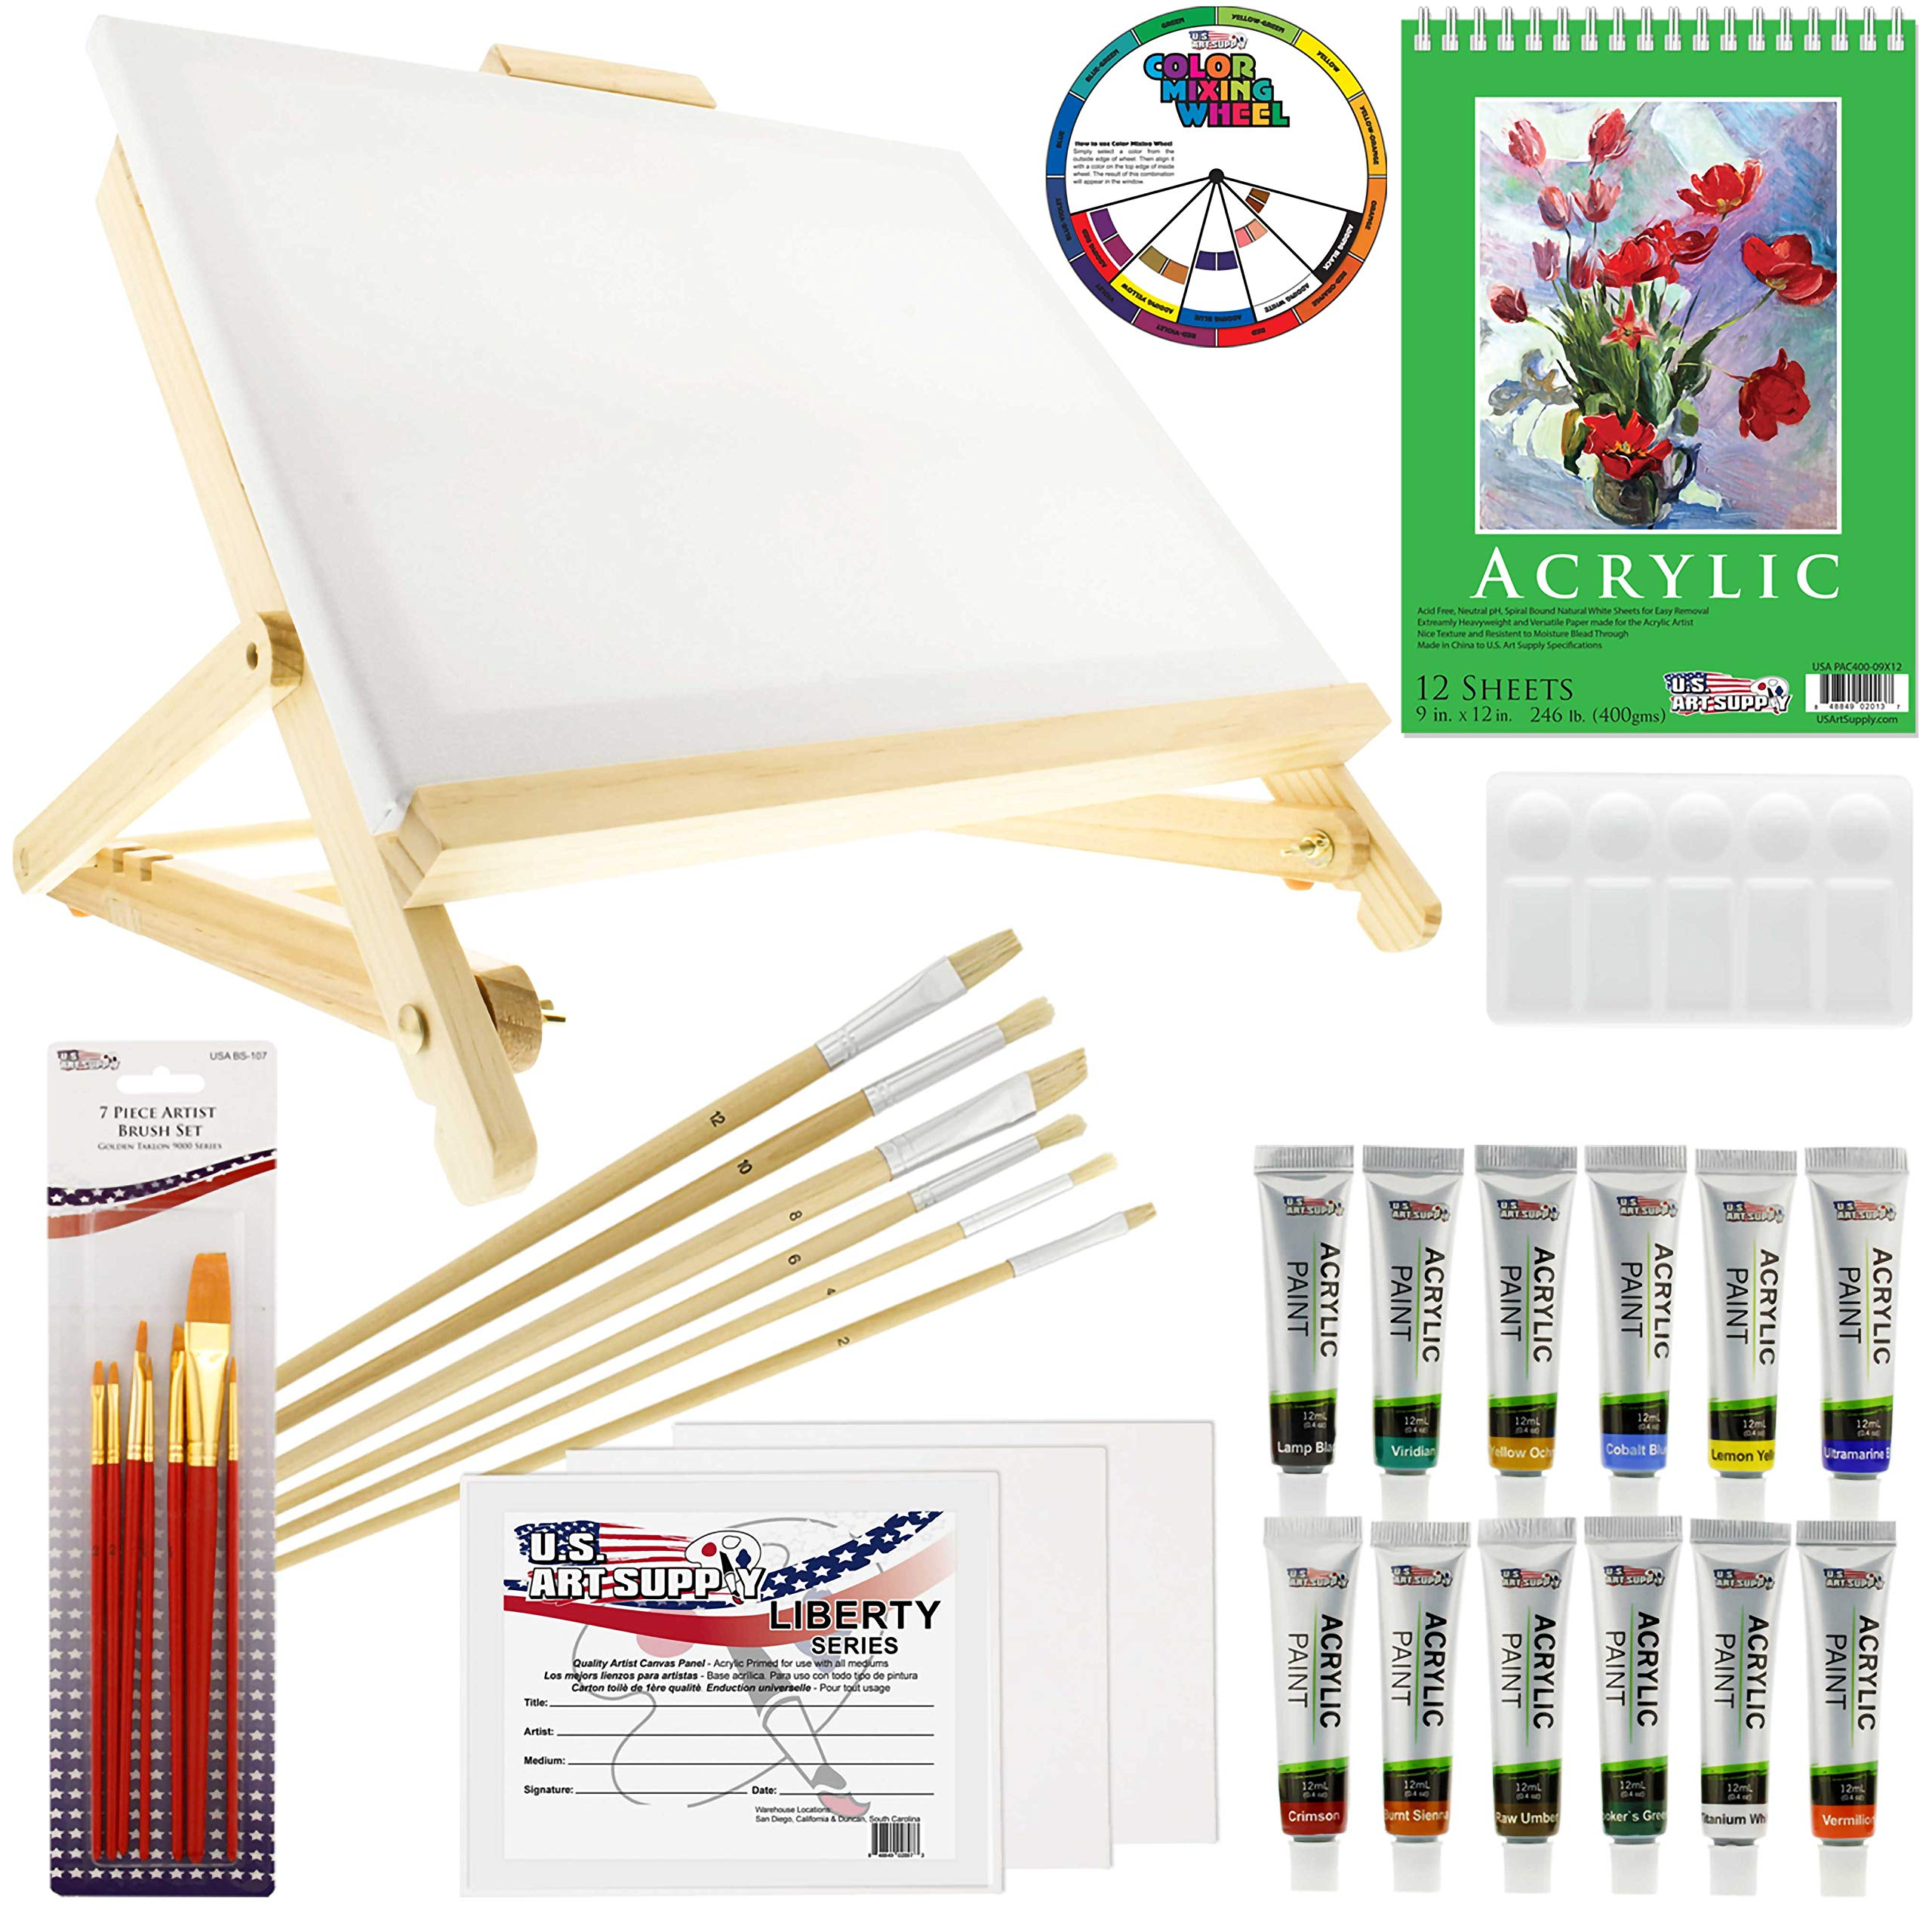 US Art Supply 33 Piece Custom Artist Acrylic Painting Set with Table Easel, Paint, Canvas and Accessories by US Art Supply